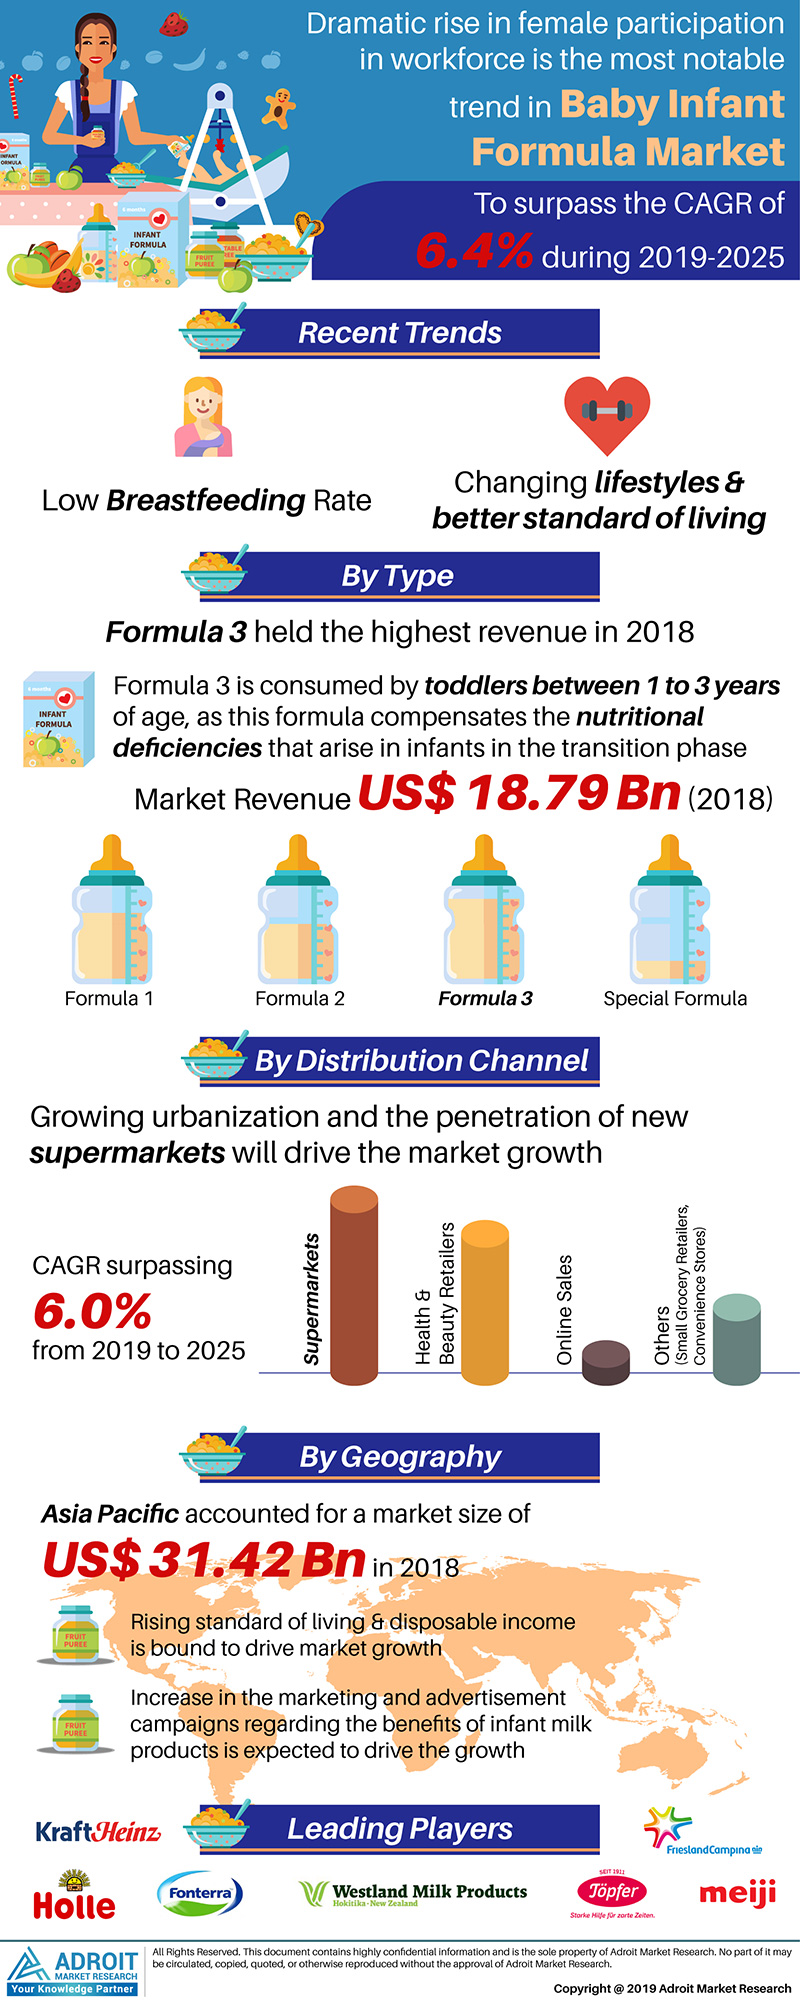 Global Baby Infant Formula Market Size 2017 By Type, Distribution Channel, Region and Forecast 2018 to 2025